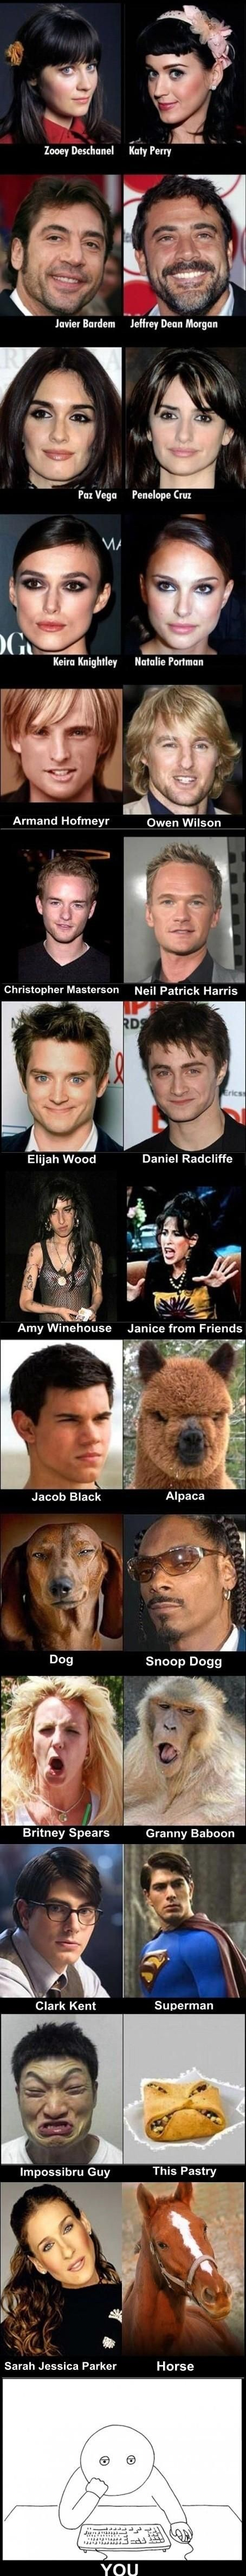 Celebrity lookalikes... Hilarious :D